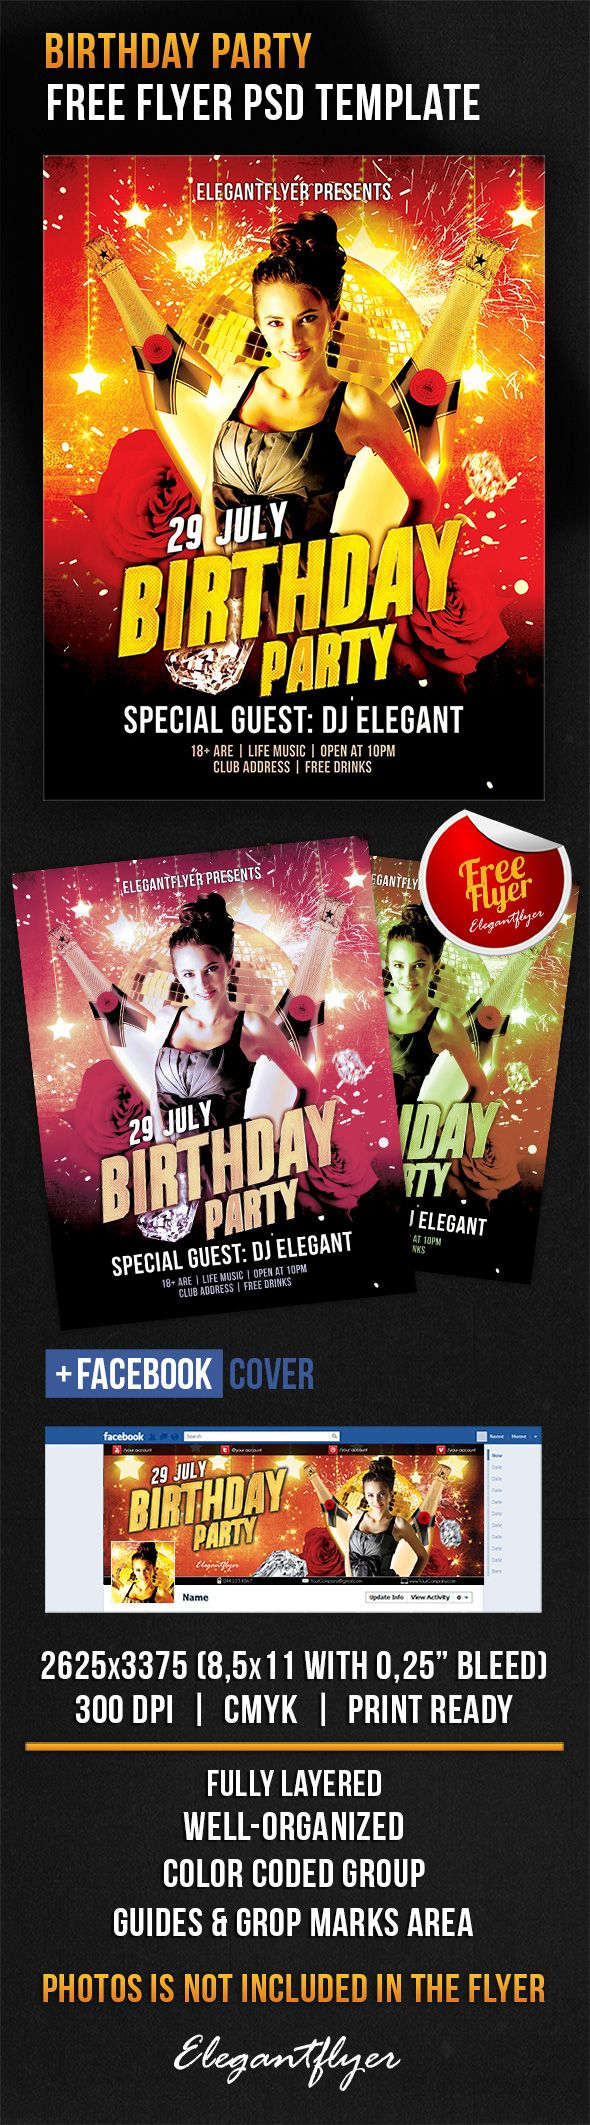 17 best images about psd flyer design 2015 birthday party flyer psd template facebook cover